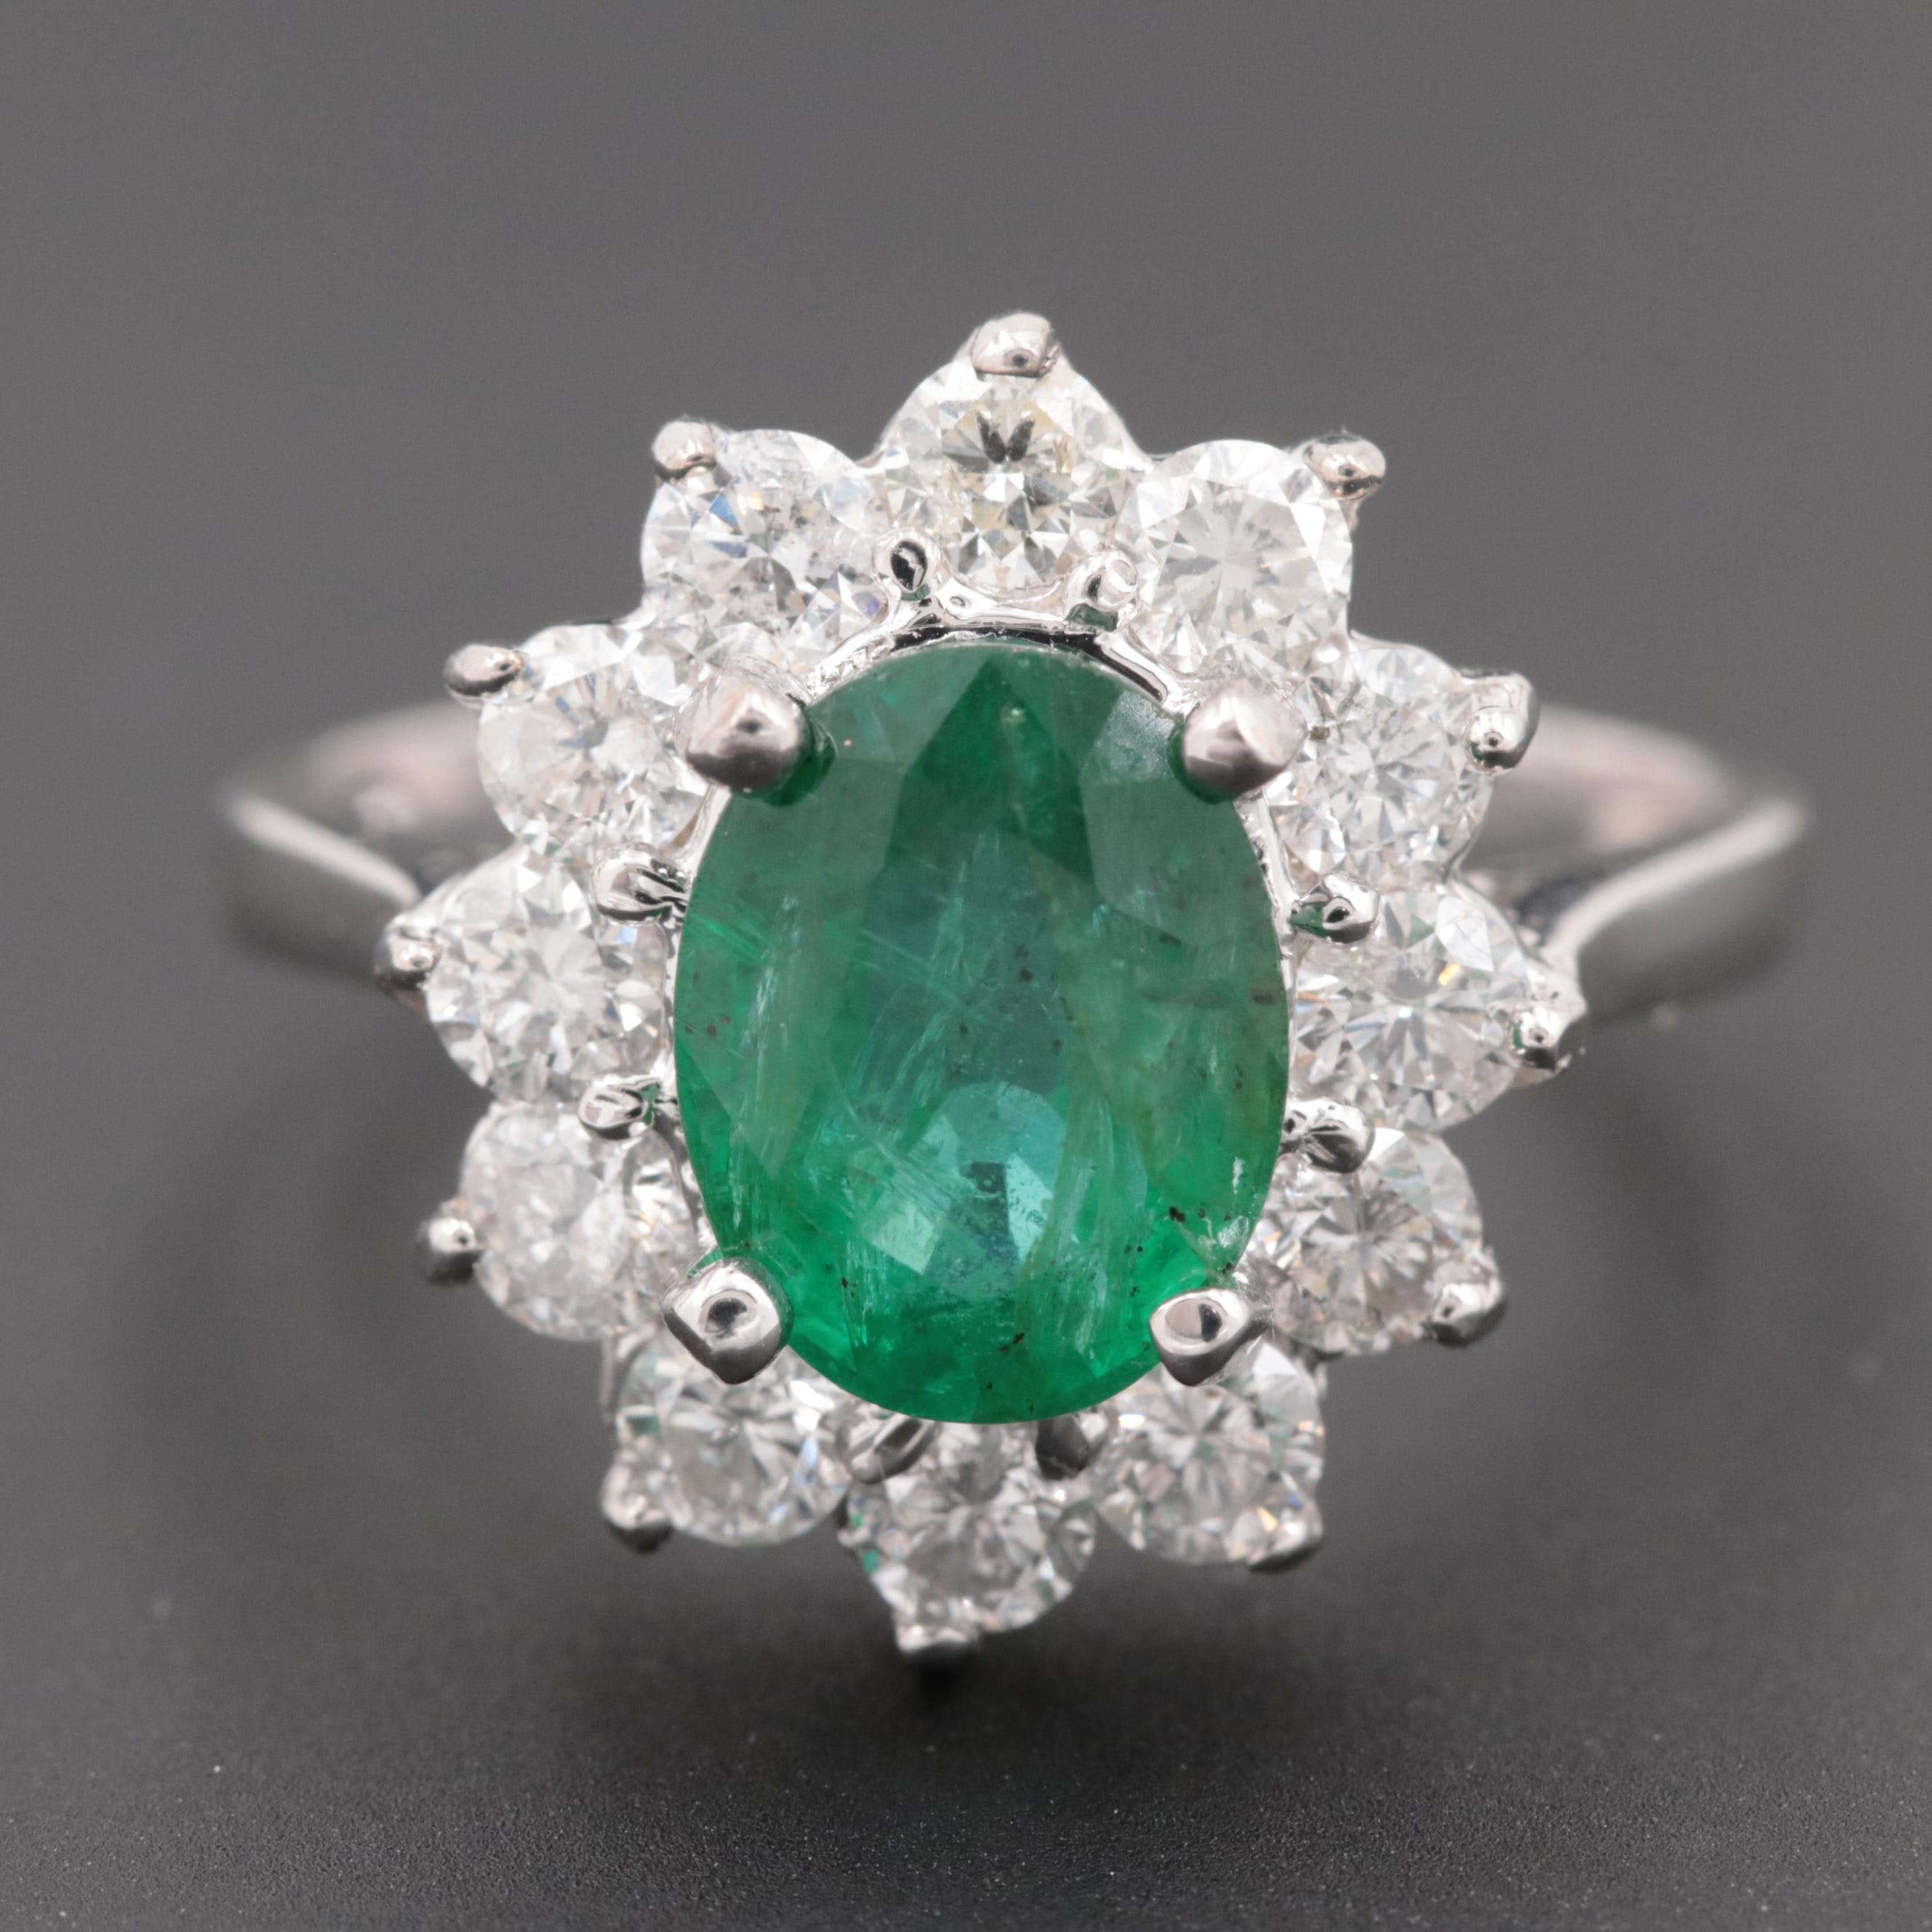 18K White Gold 1.78 CT Emerald and Diamond Ring